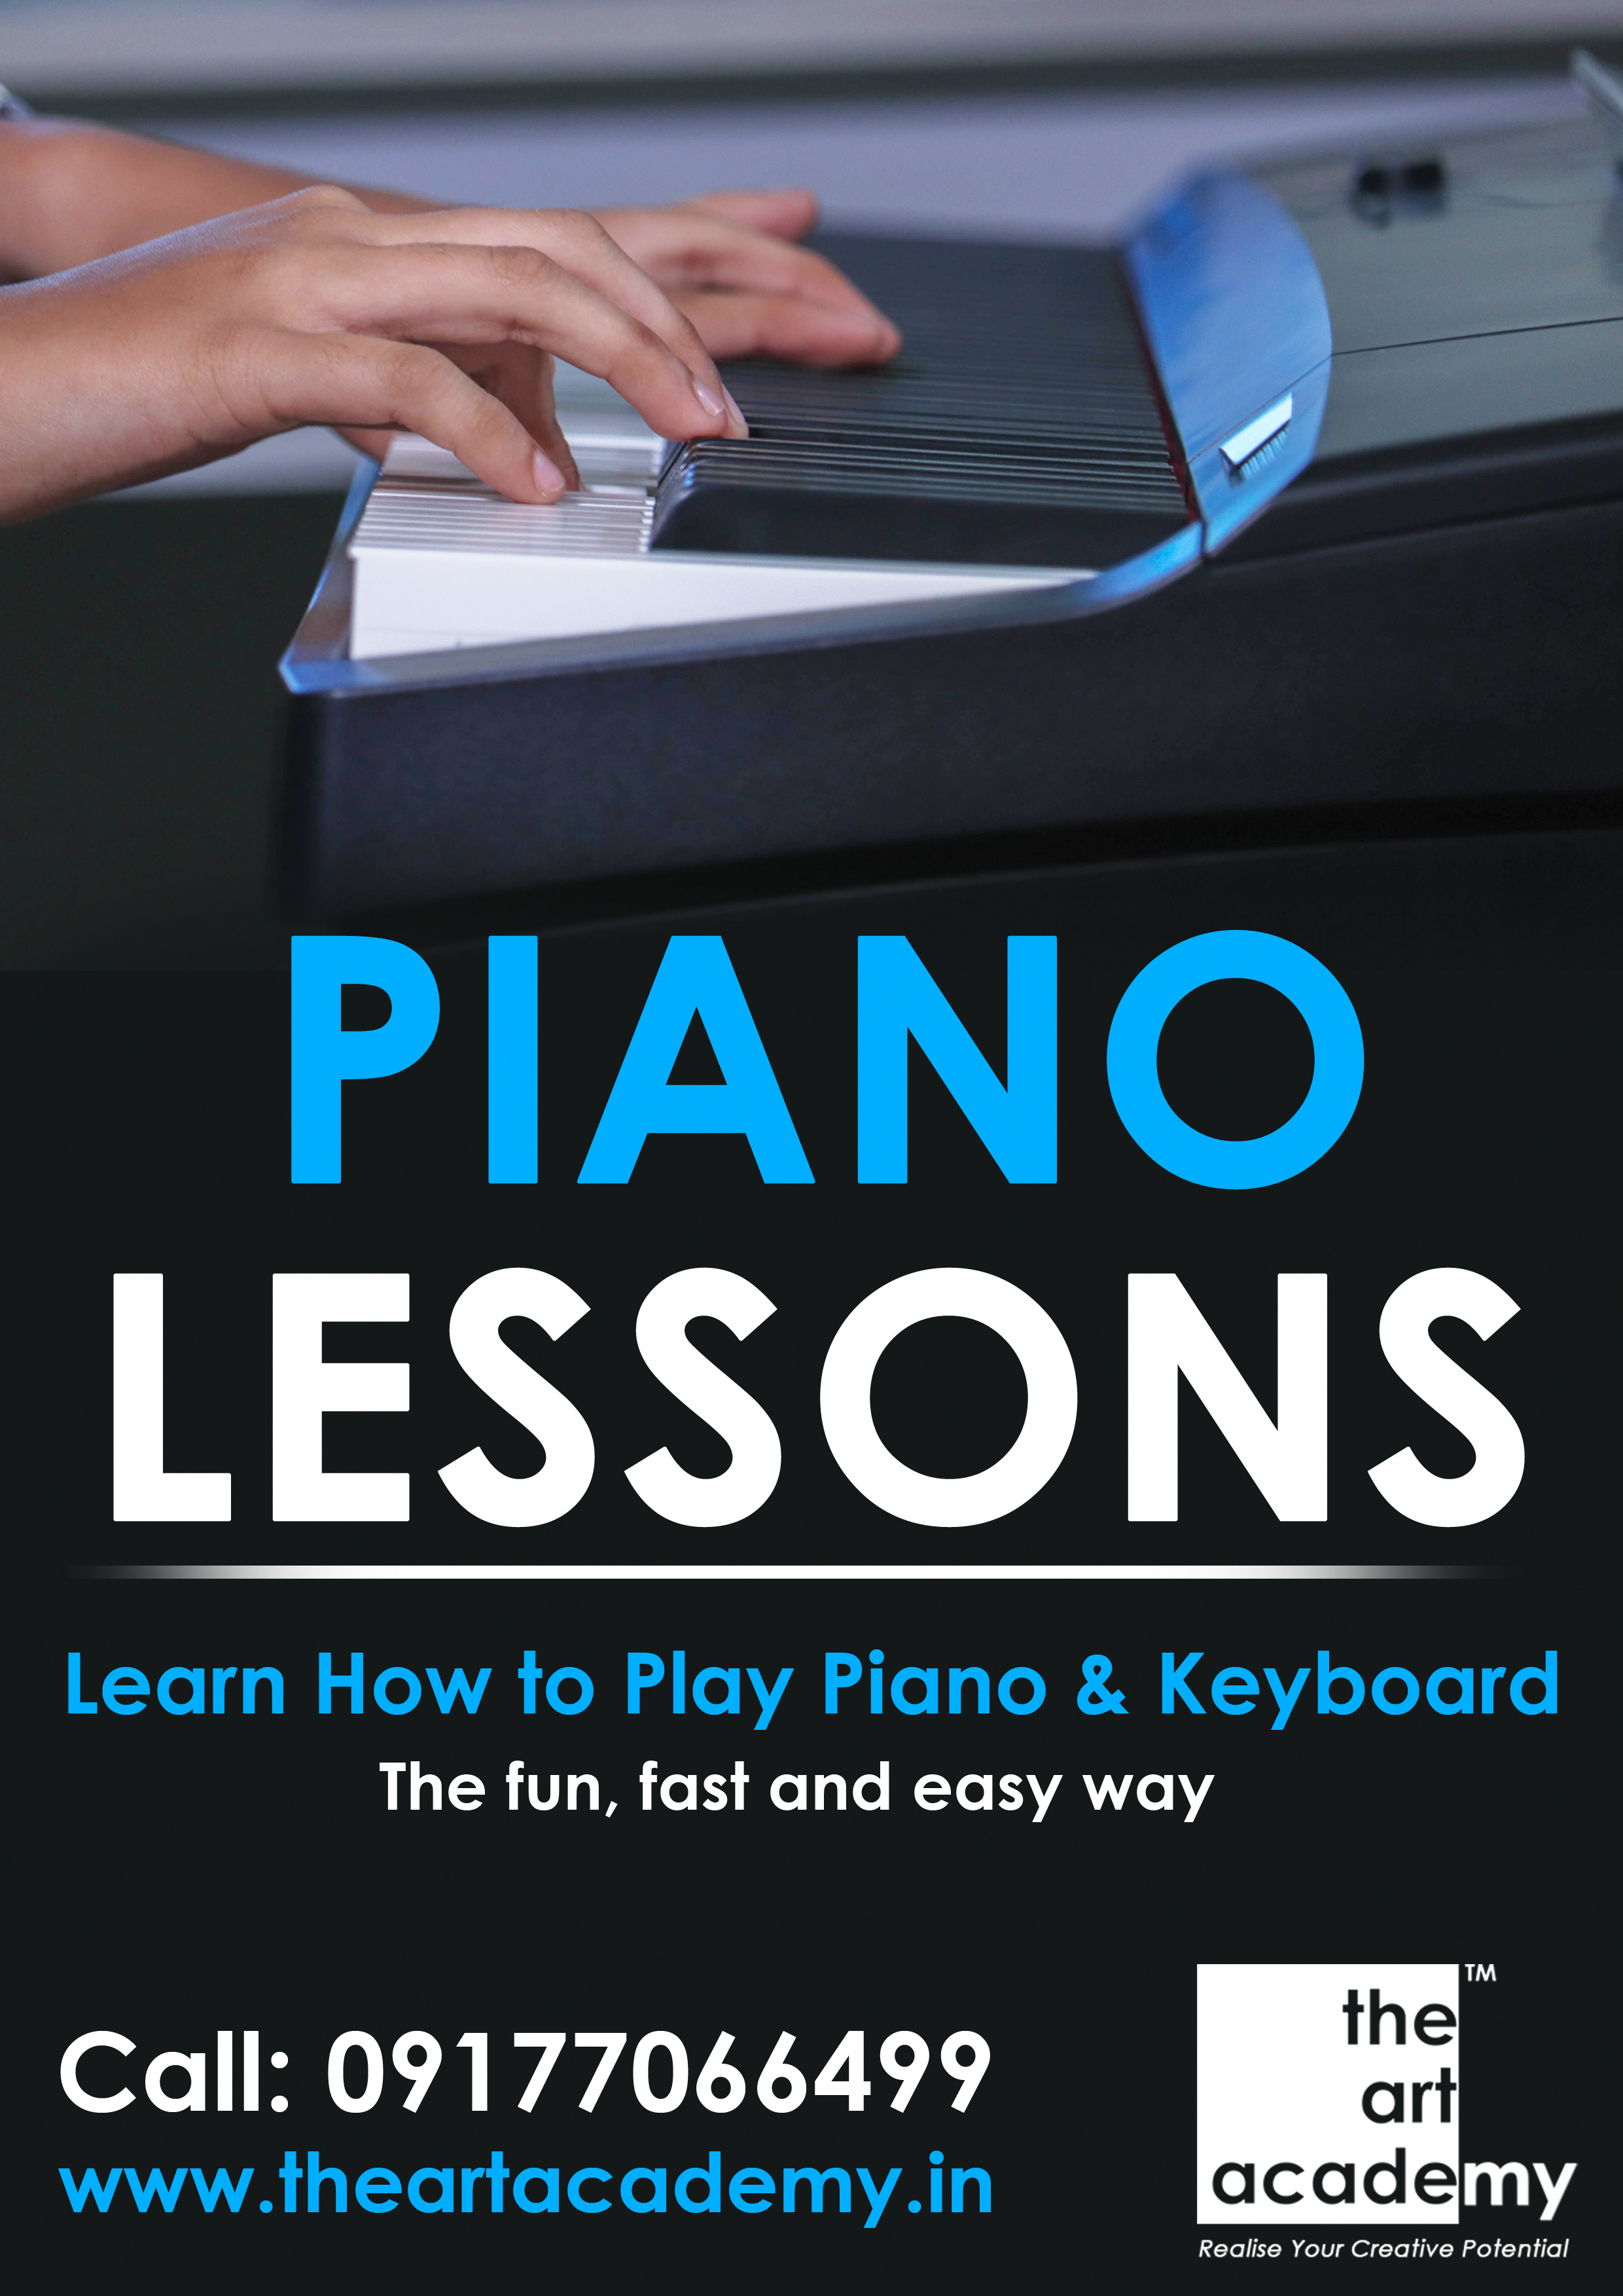 Piano Classes For Adults Children In Secunderabad At The Art Academy Enrol Now 09177066499 The Art Academy H No 9 Piano Classes Piano Lessons Learn Piano